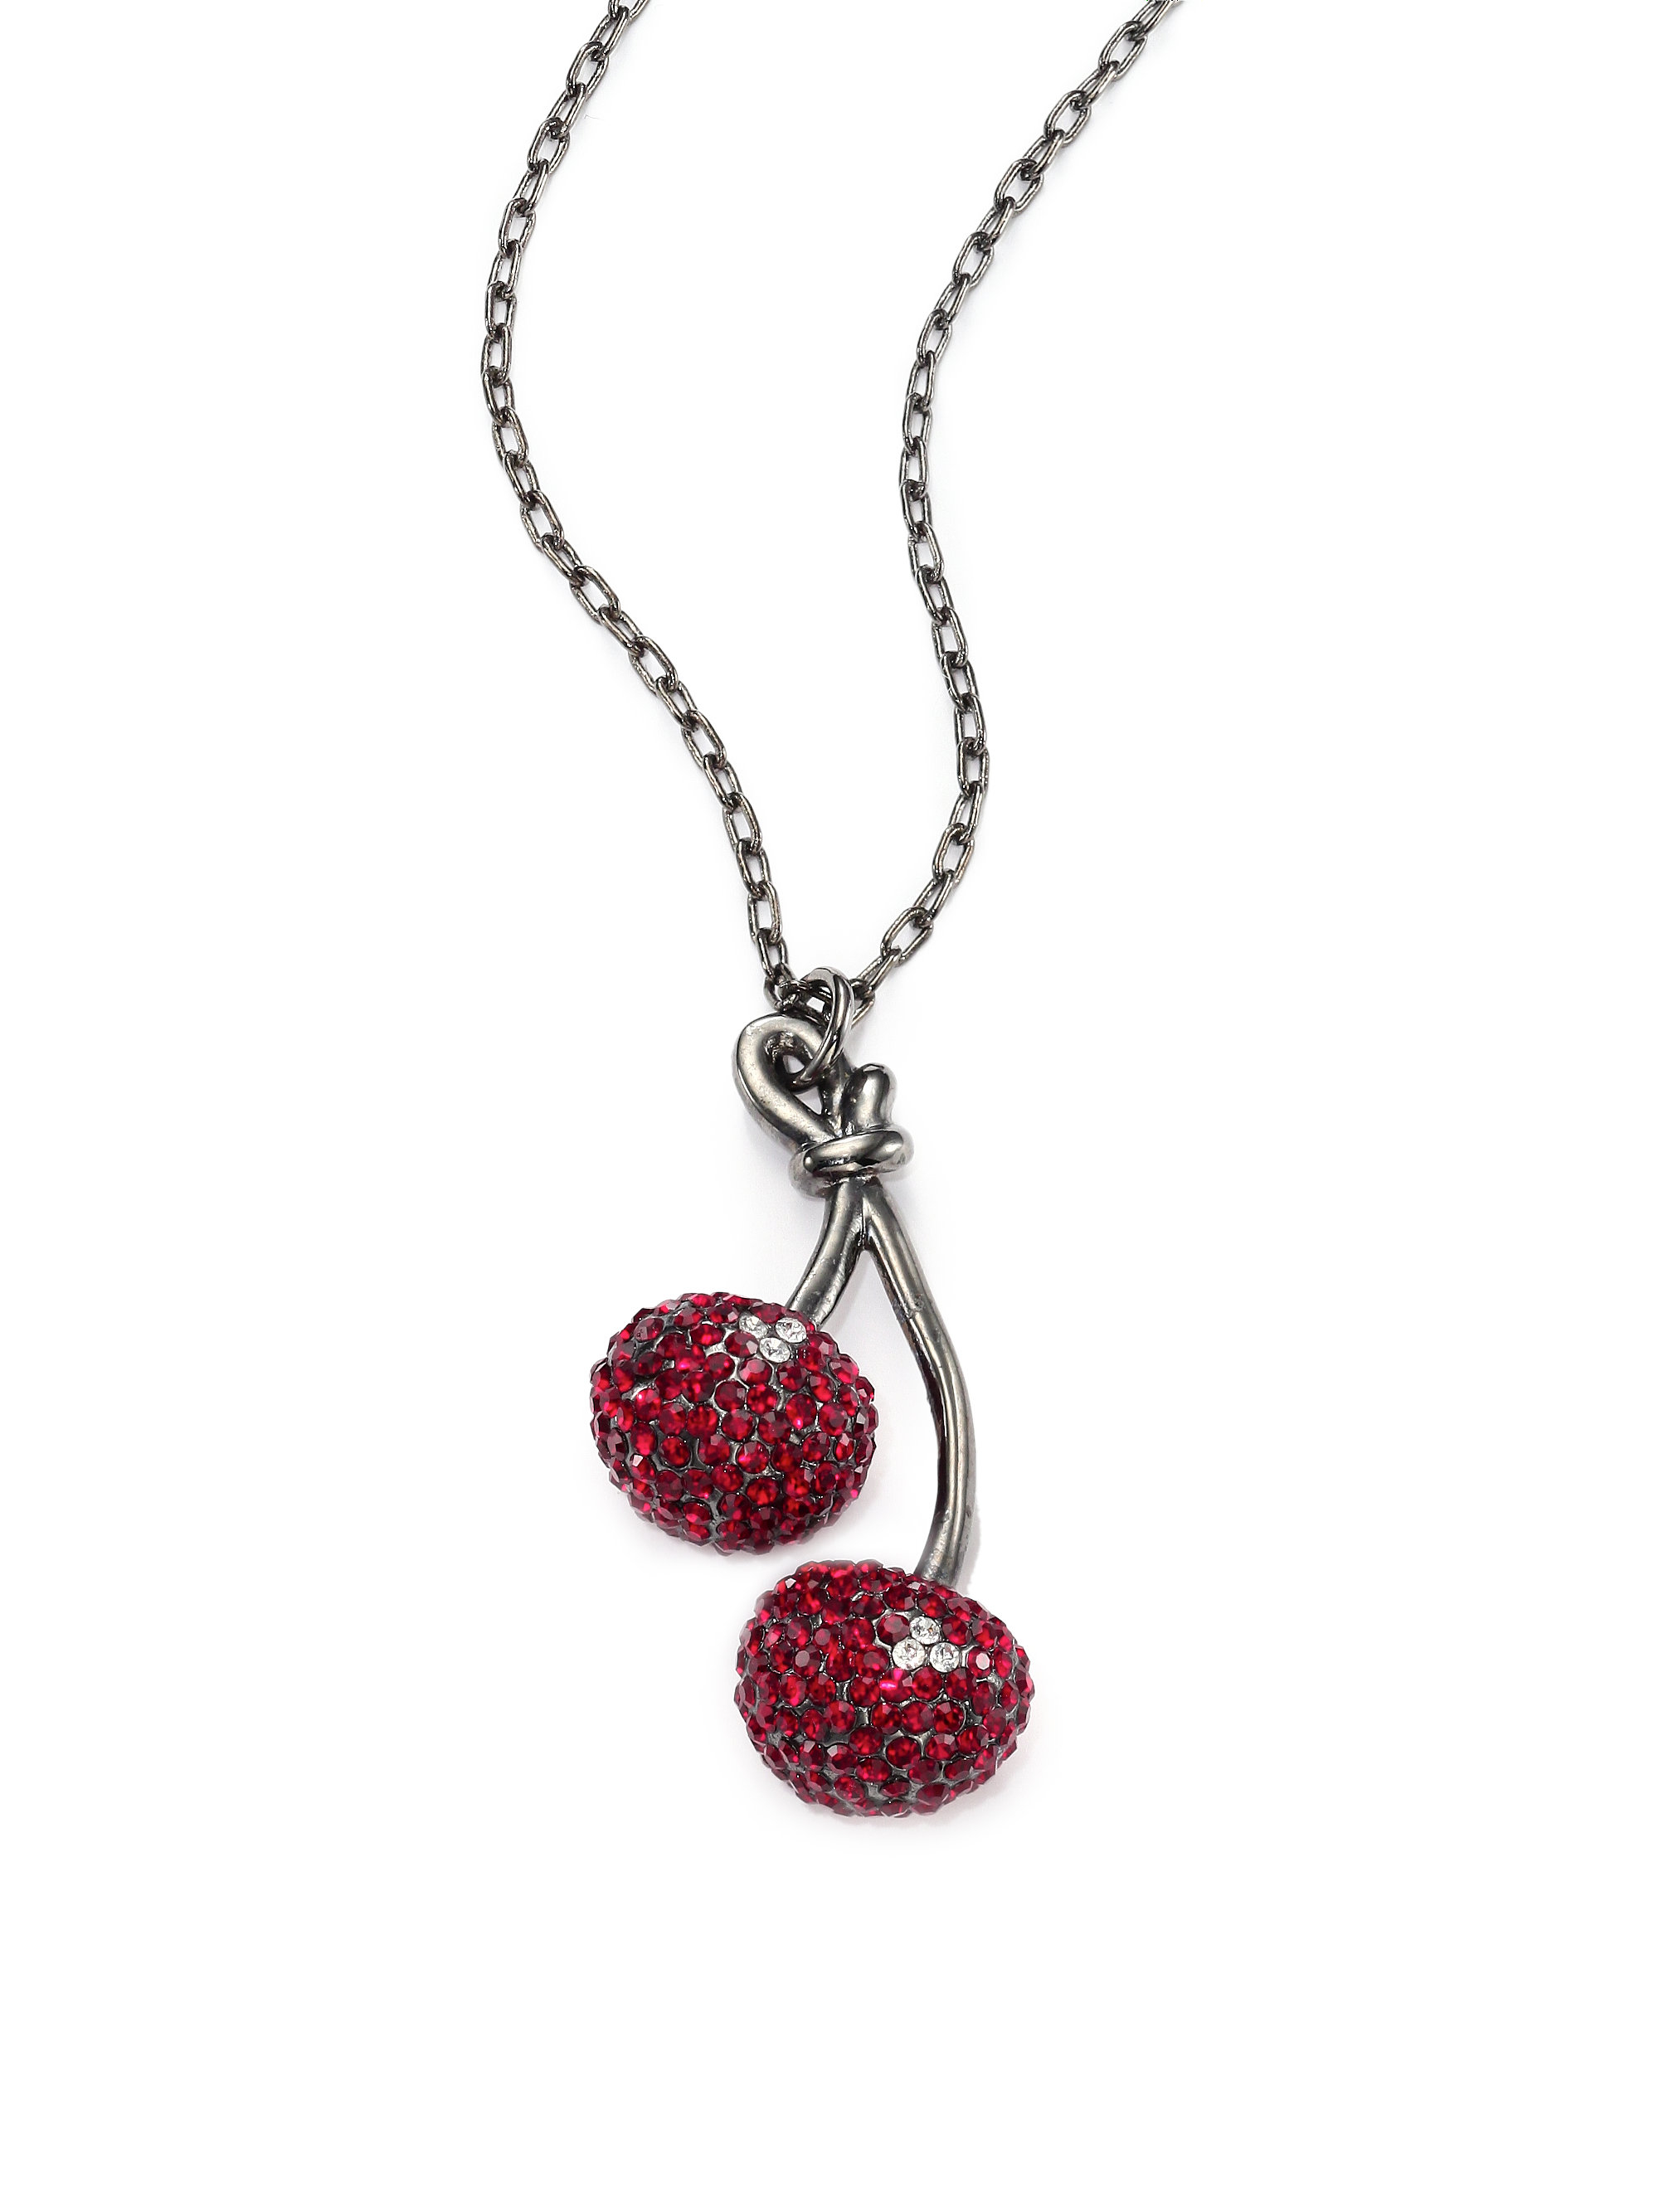 on based ratings user long necklaces pendant out nkr of classic red reviews klimt necklace